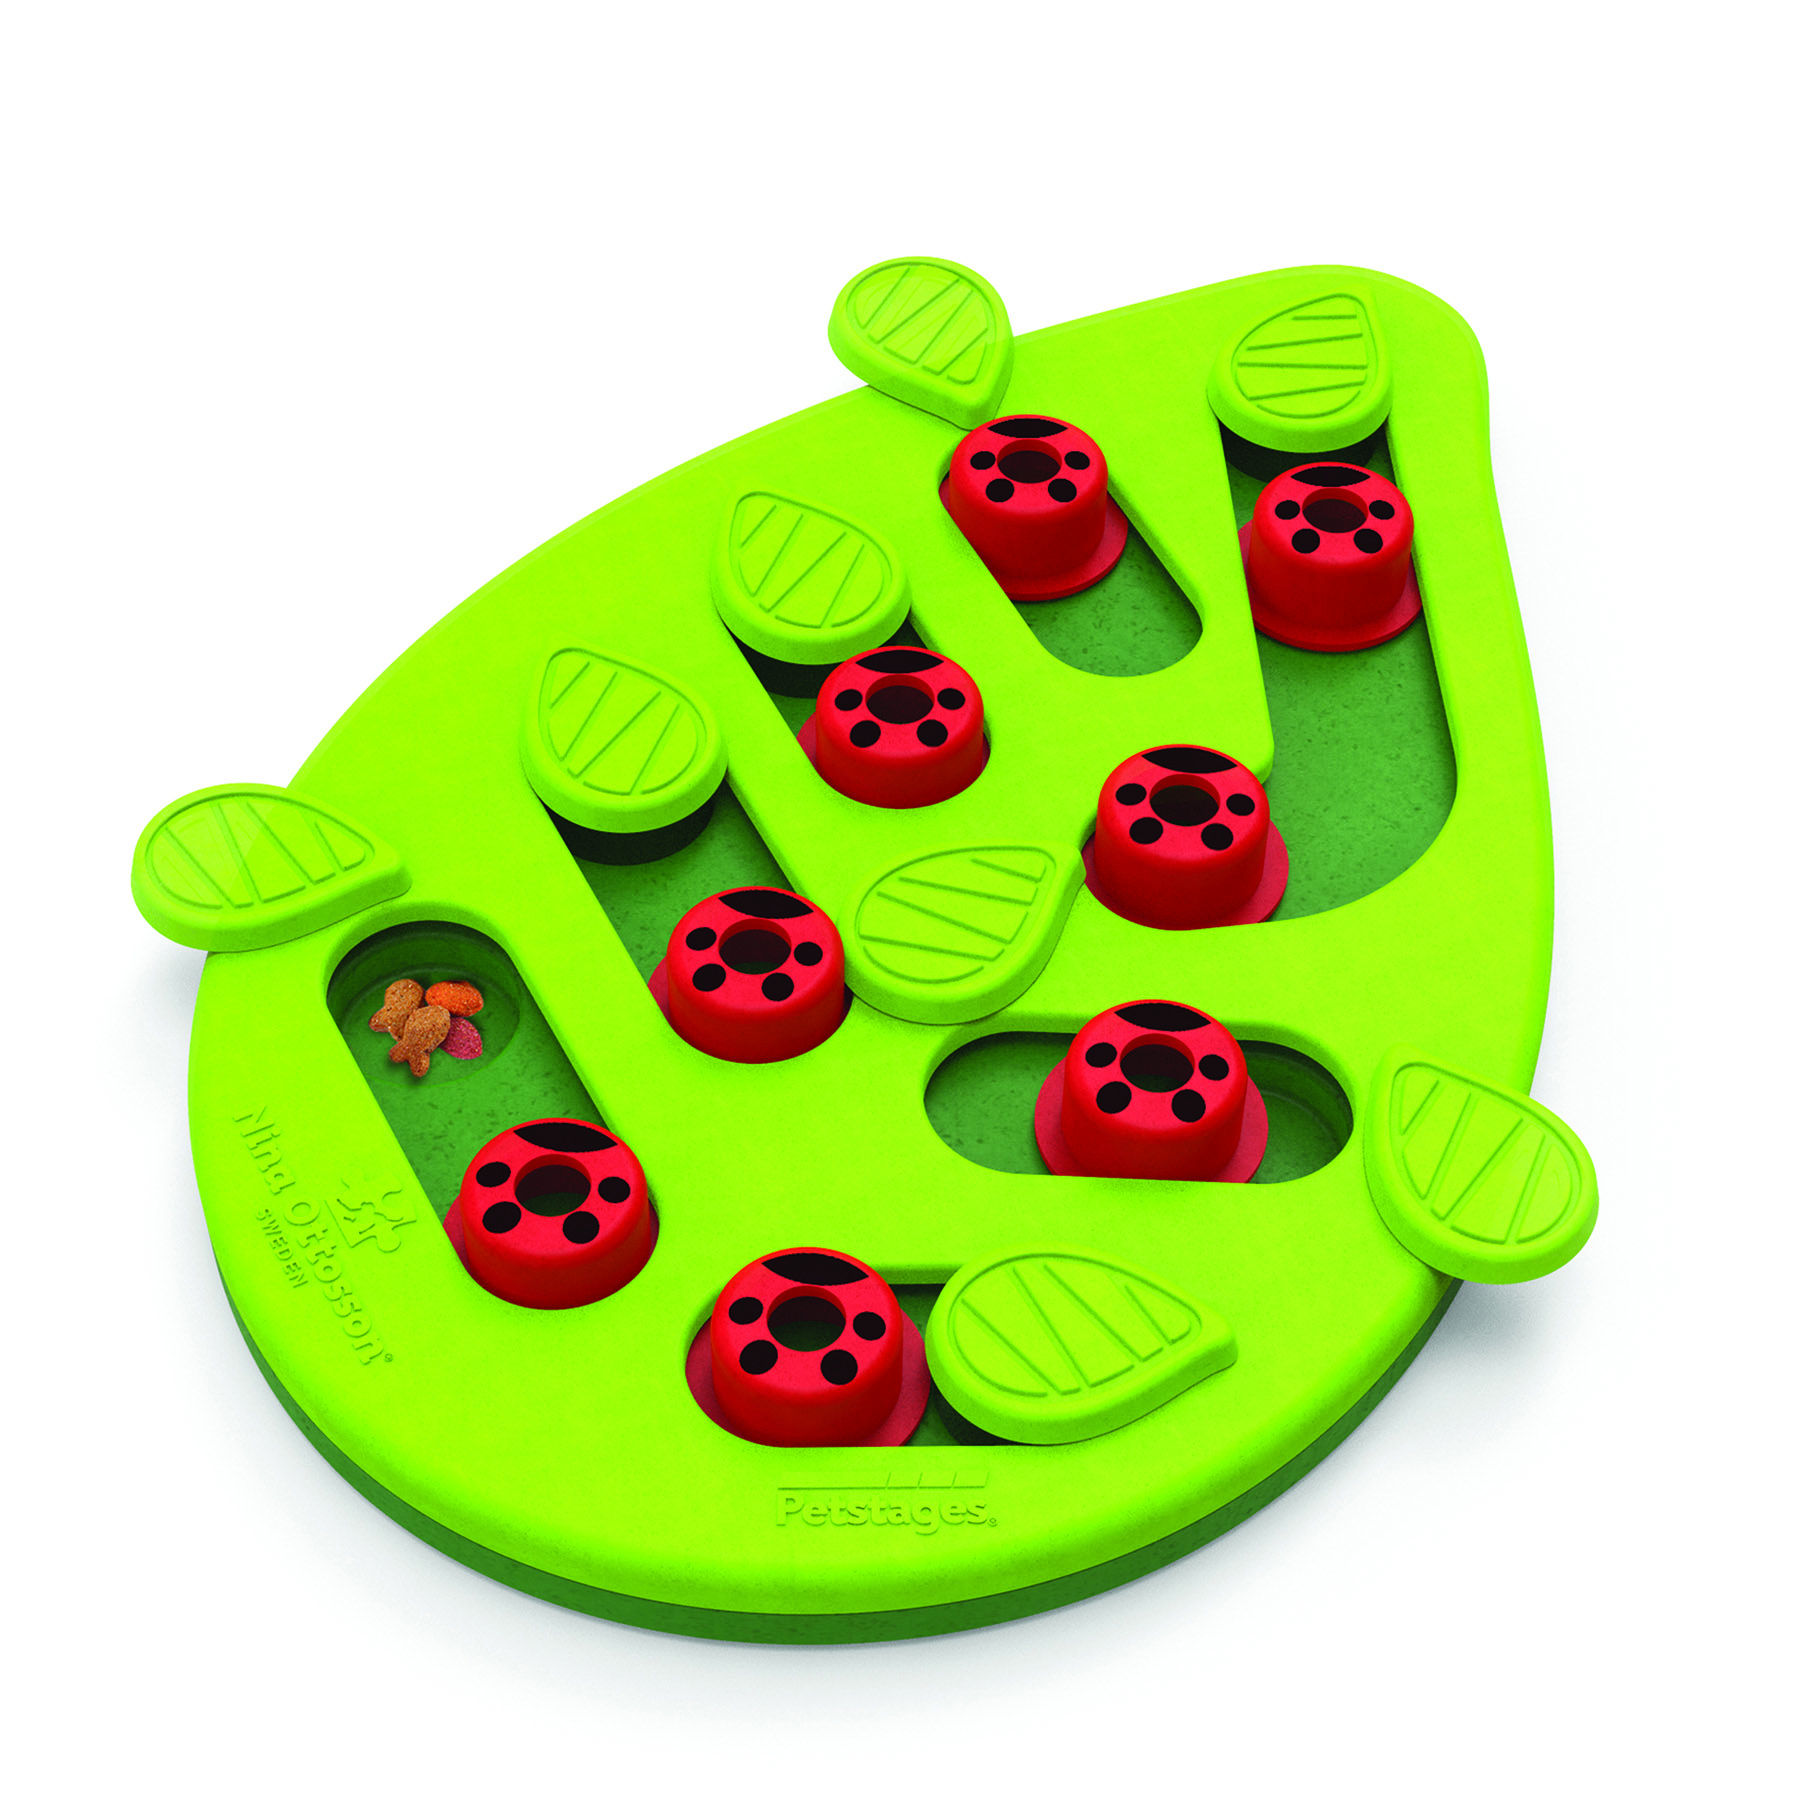 69479 Petstages NinaOttosson PuzzleAndPlay BugginOut Grn Main